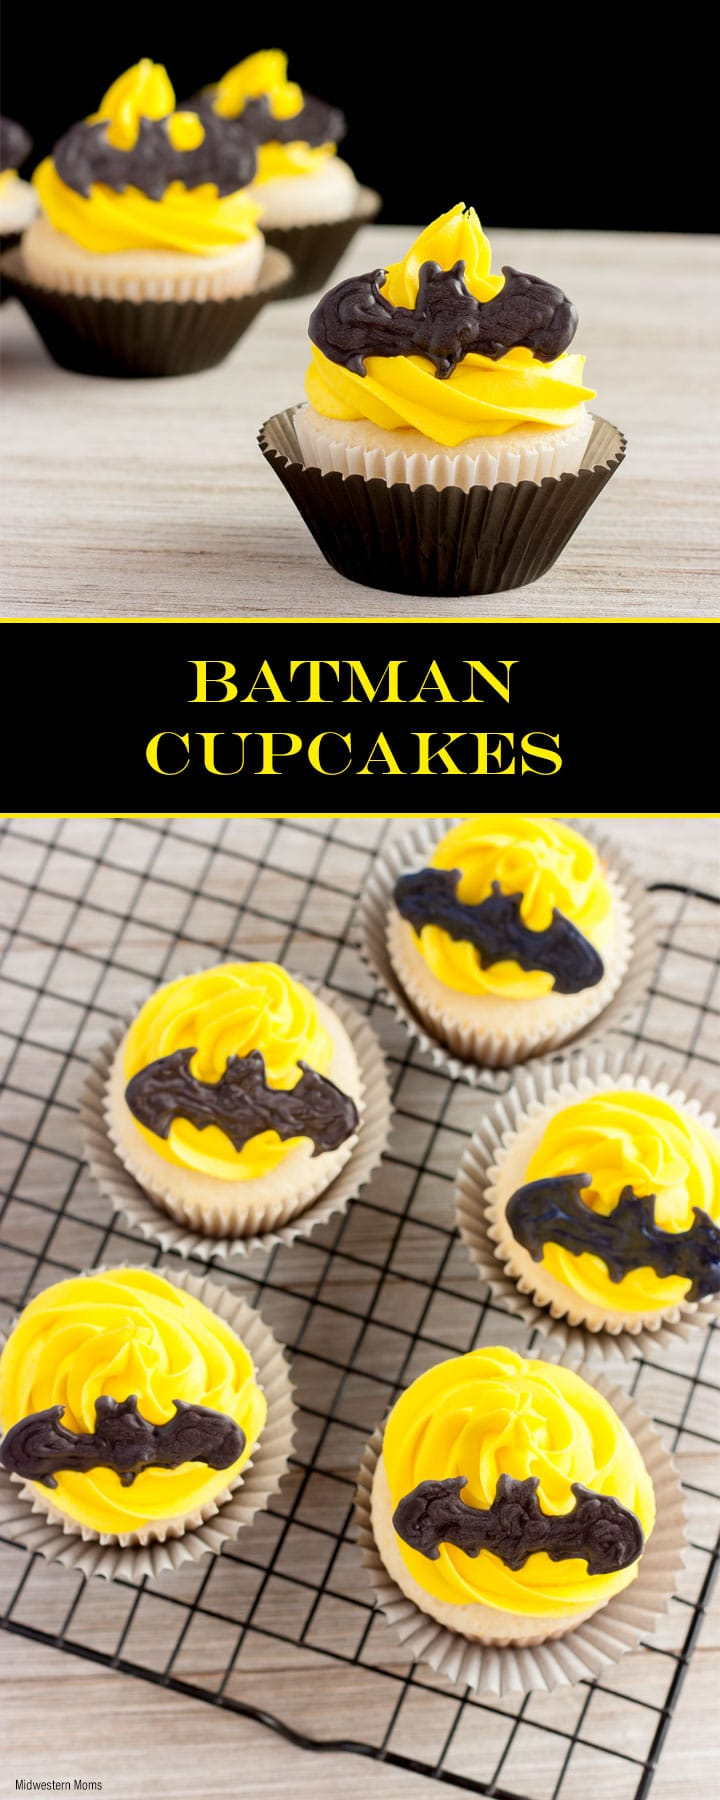 Need Batman cupcakes for a Batman-themed birthday party? These delicious cupcakes are topped with homemade yellow buttercream frosting and a candy bat shape.